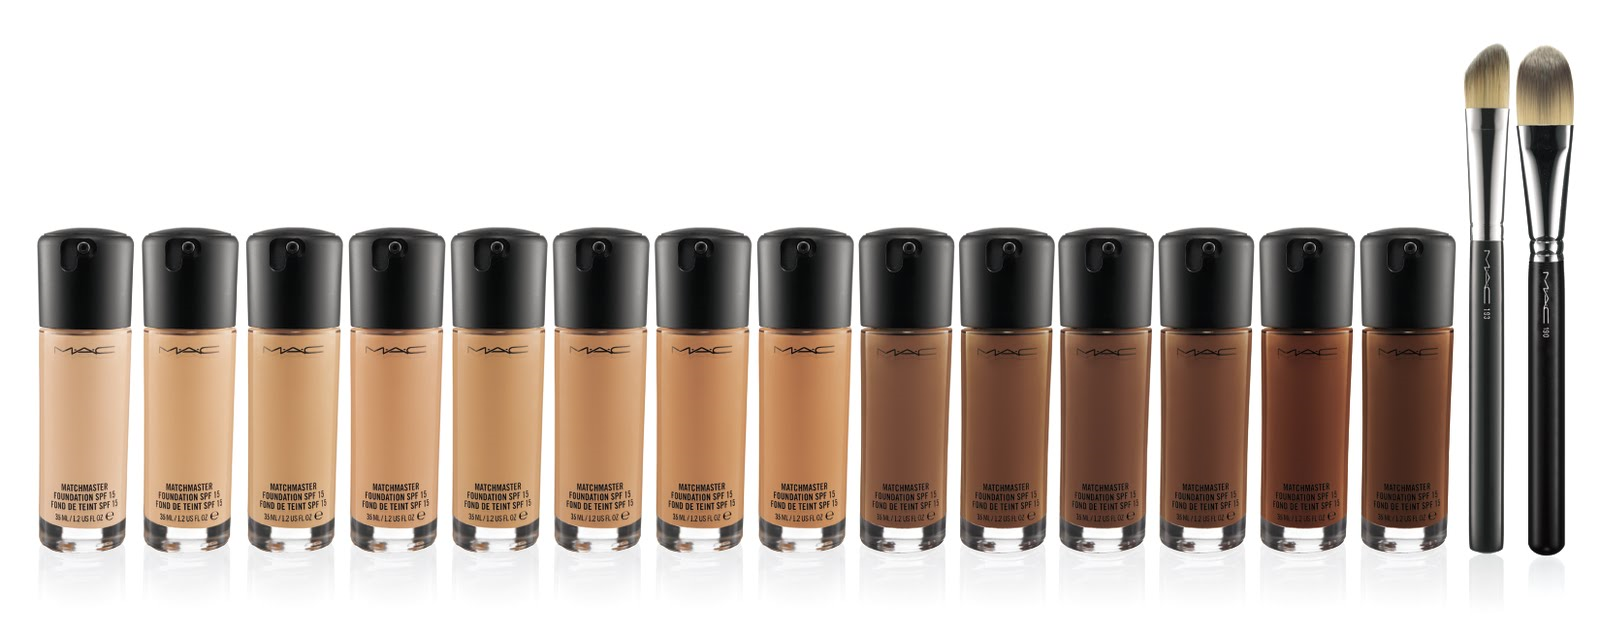 Wonders of beauty review mac matchmaster spf 15 foundation i normally use nc50 throughout the mac ranges and though mac claims that with this new technology the foundation shade should adjust to your skin tone publicscrutiny Choice Image